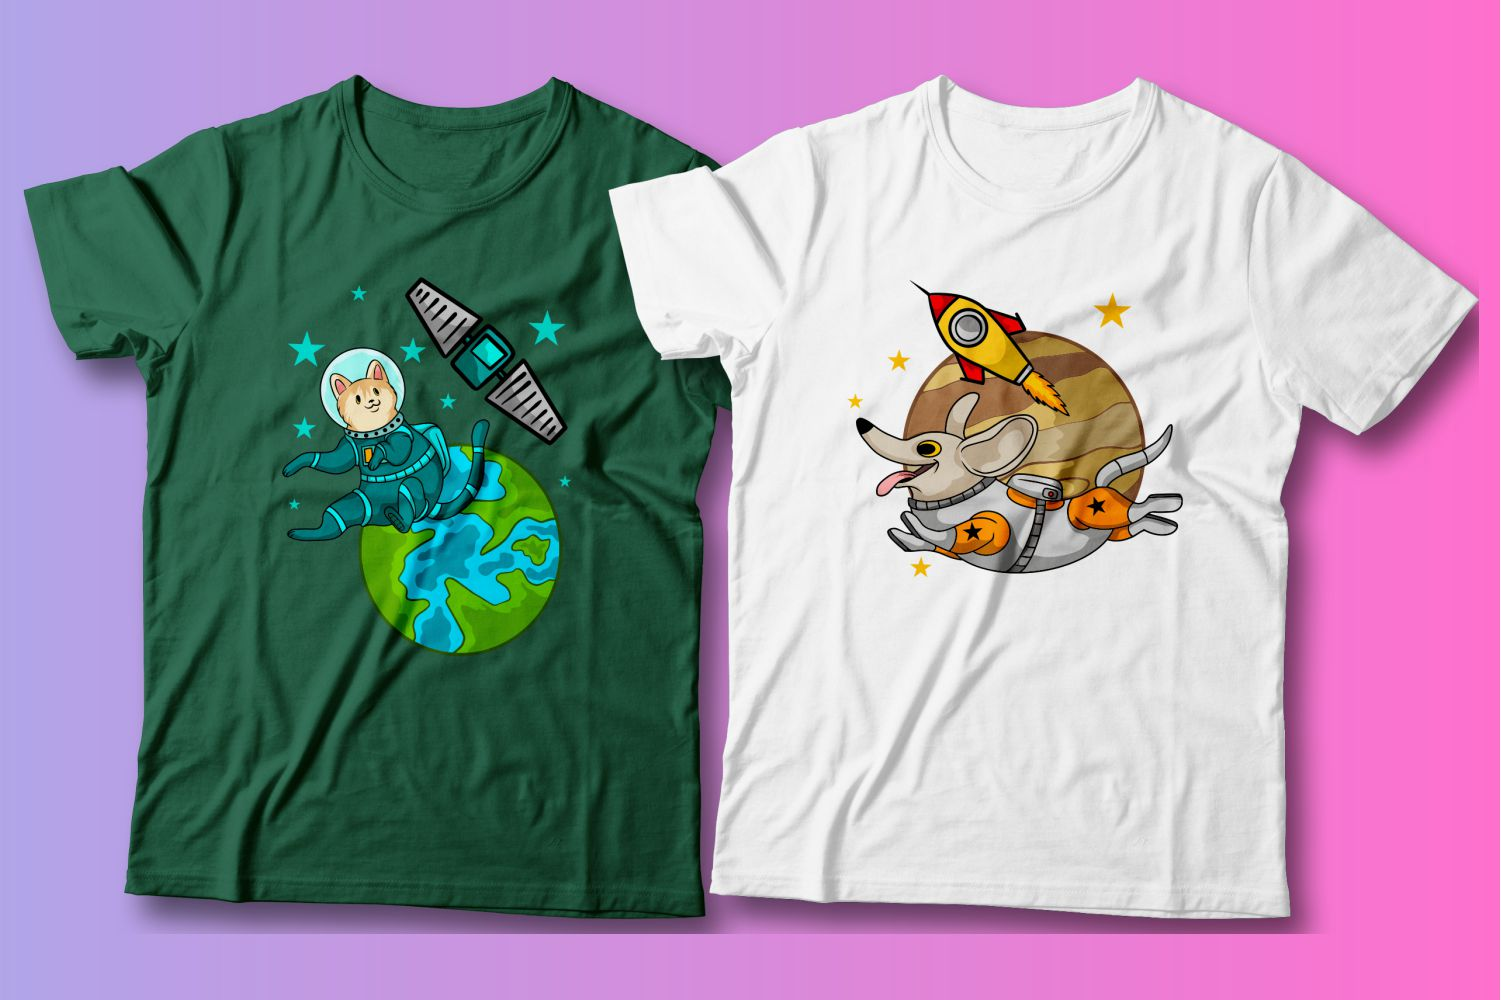 The green T-shirt and the white T-shirt are both about pets and space.